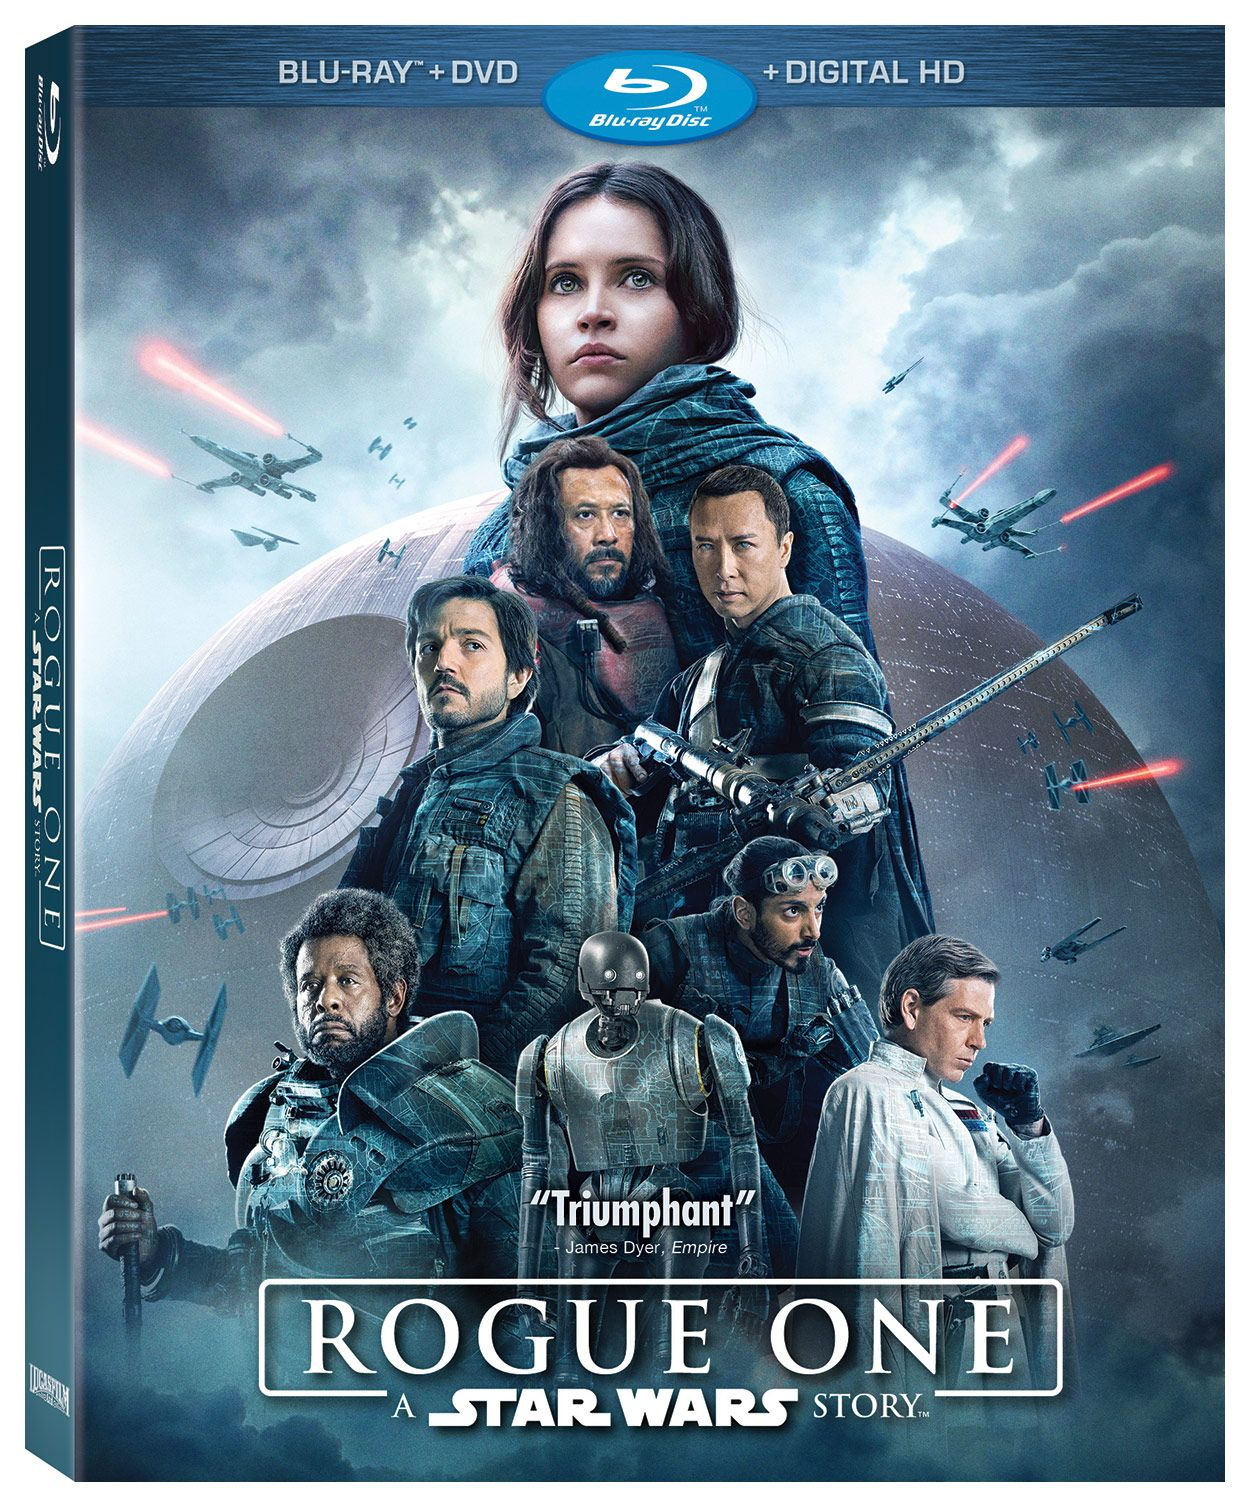 The Mission Comes Home Rogue One A Star Wars Story Arrives Soon On Digital Hd And Blu Ray Rogue One Star Wars War Stories Blu Ray Movies